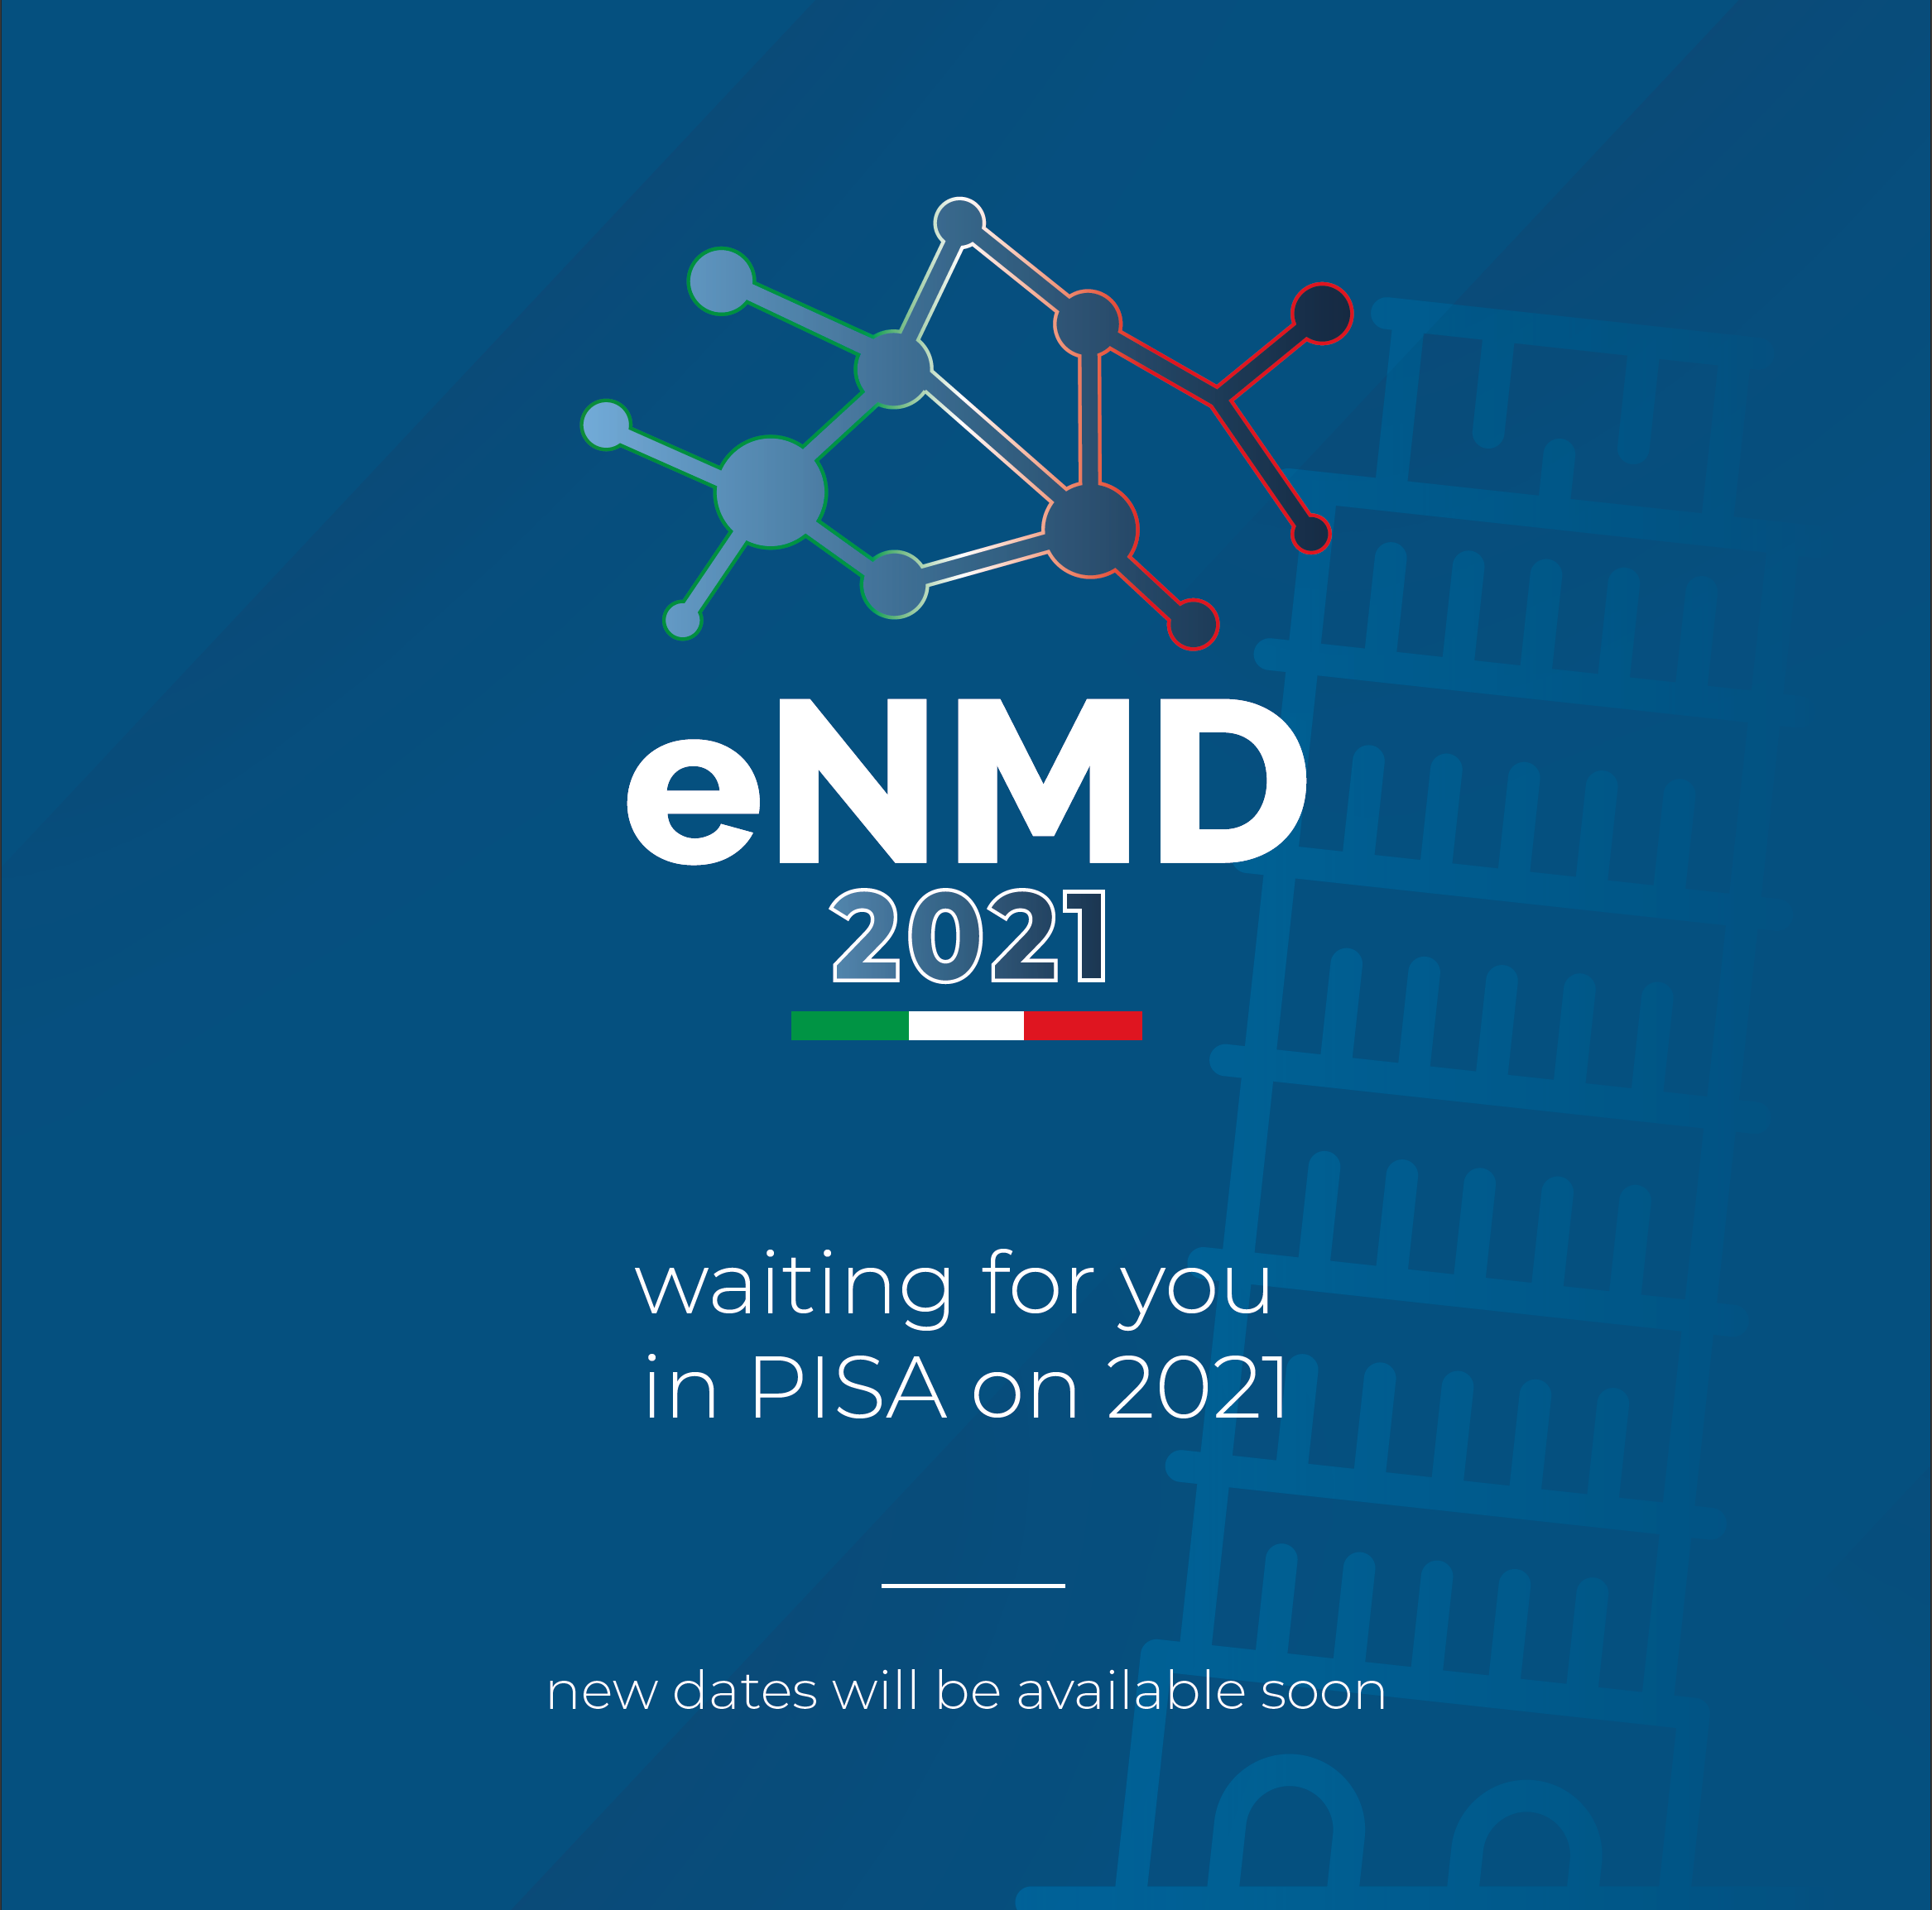 eNMD 2021